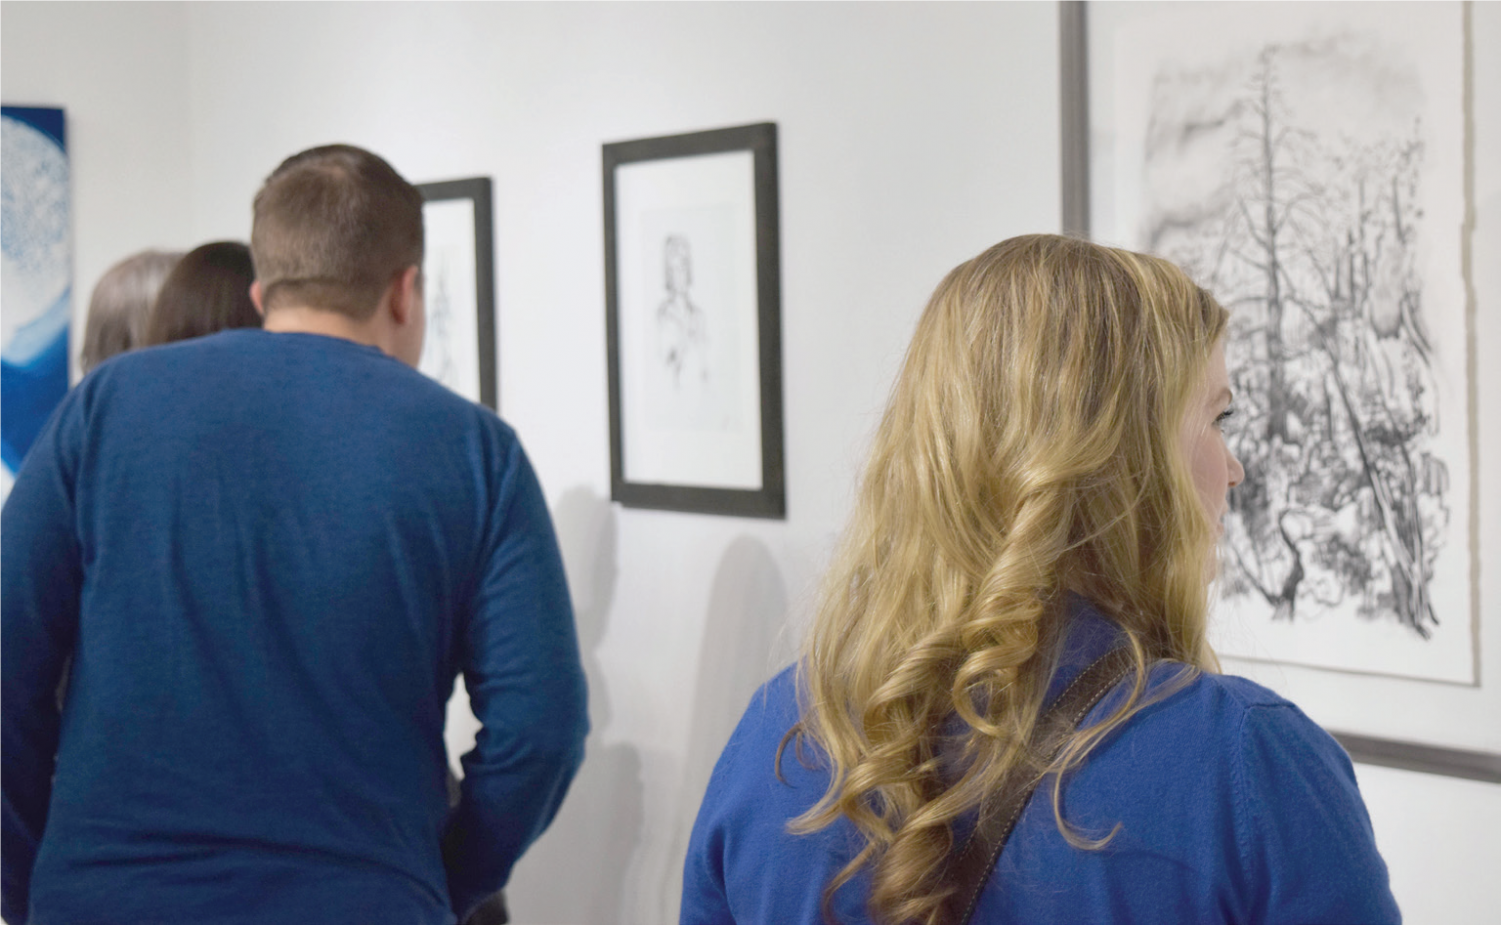 Each year, alumni from the art department return to Baldwin Wallace to share their work. This year's show runs through Oct. 26 in Fawick Gallery in Kleist.